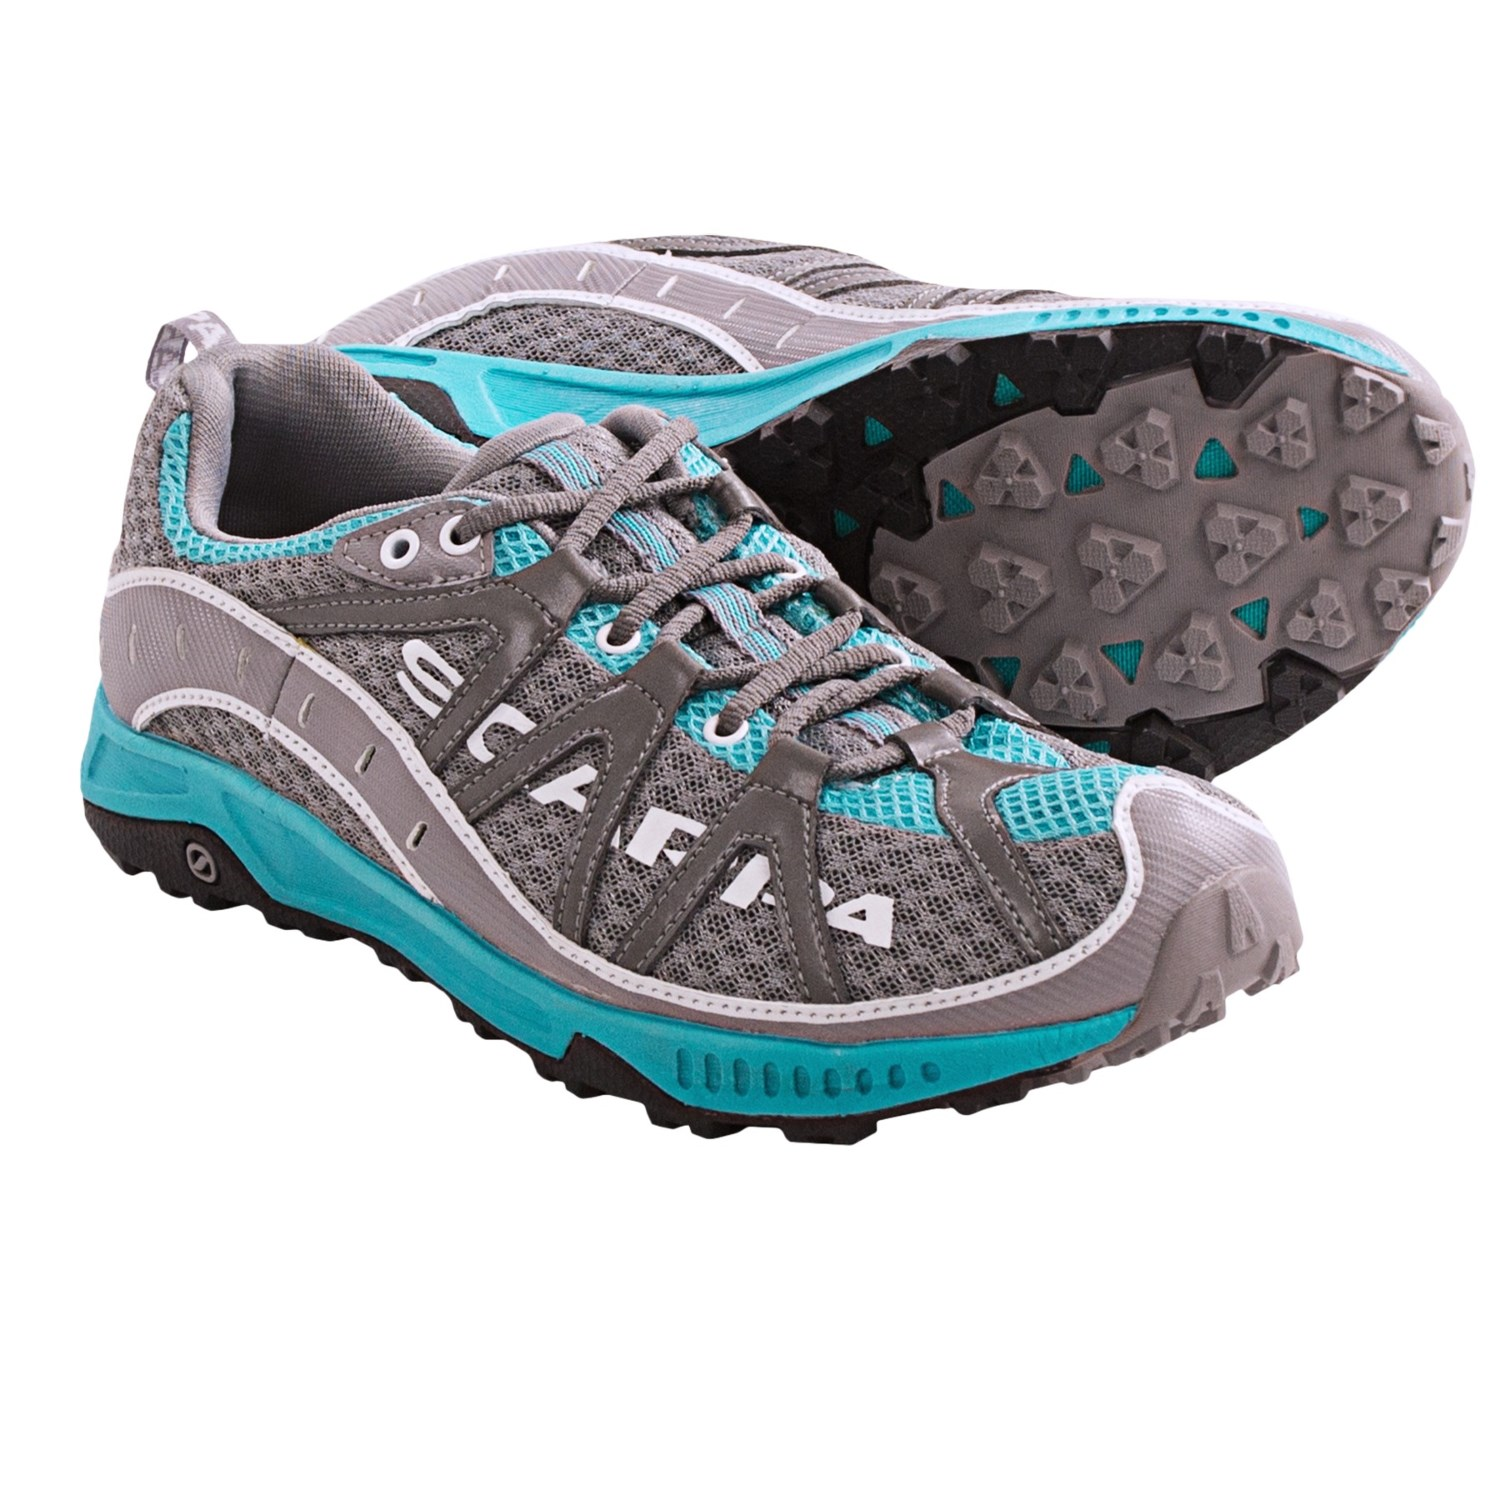 Scarpa Spark Trail Running Shoes (For Women) in Pewter/Turquoise